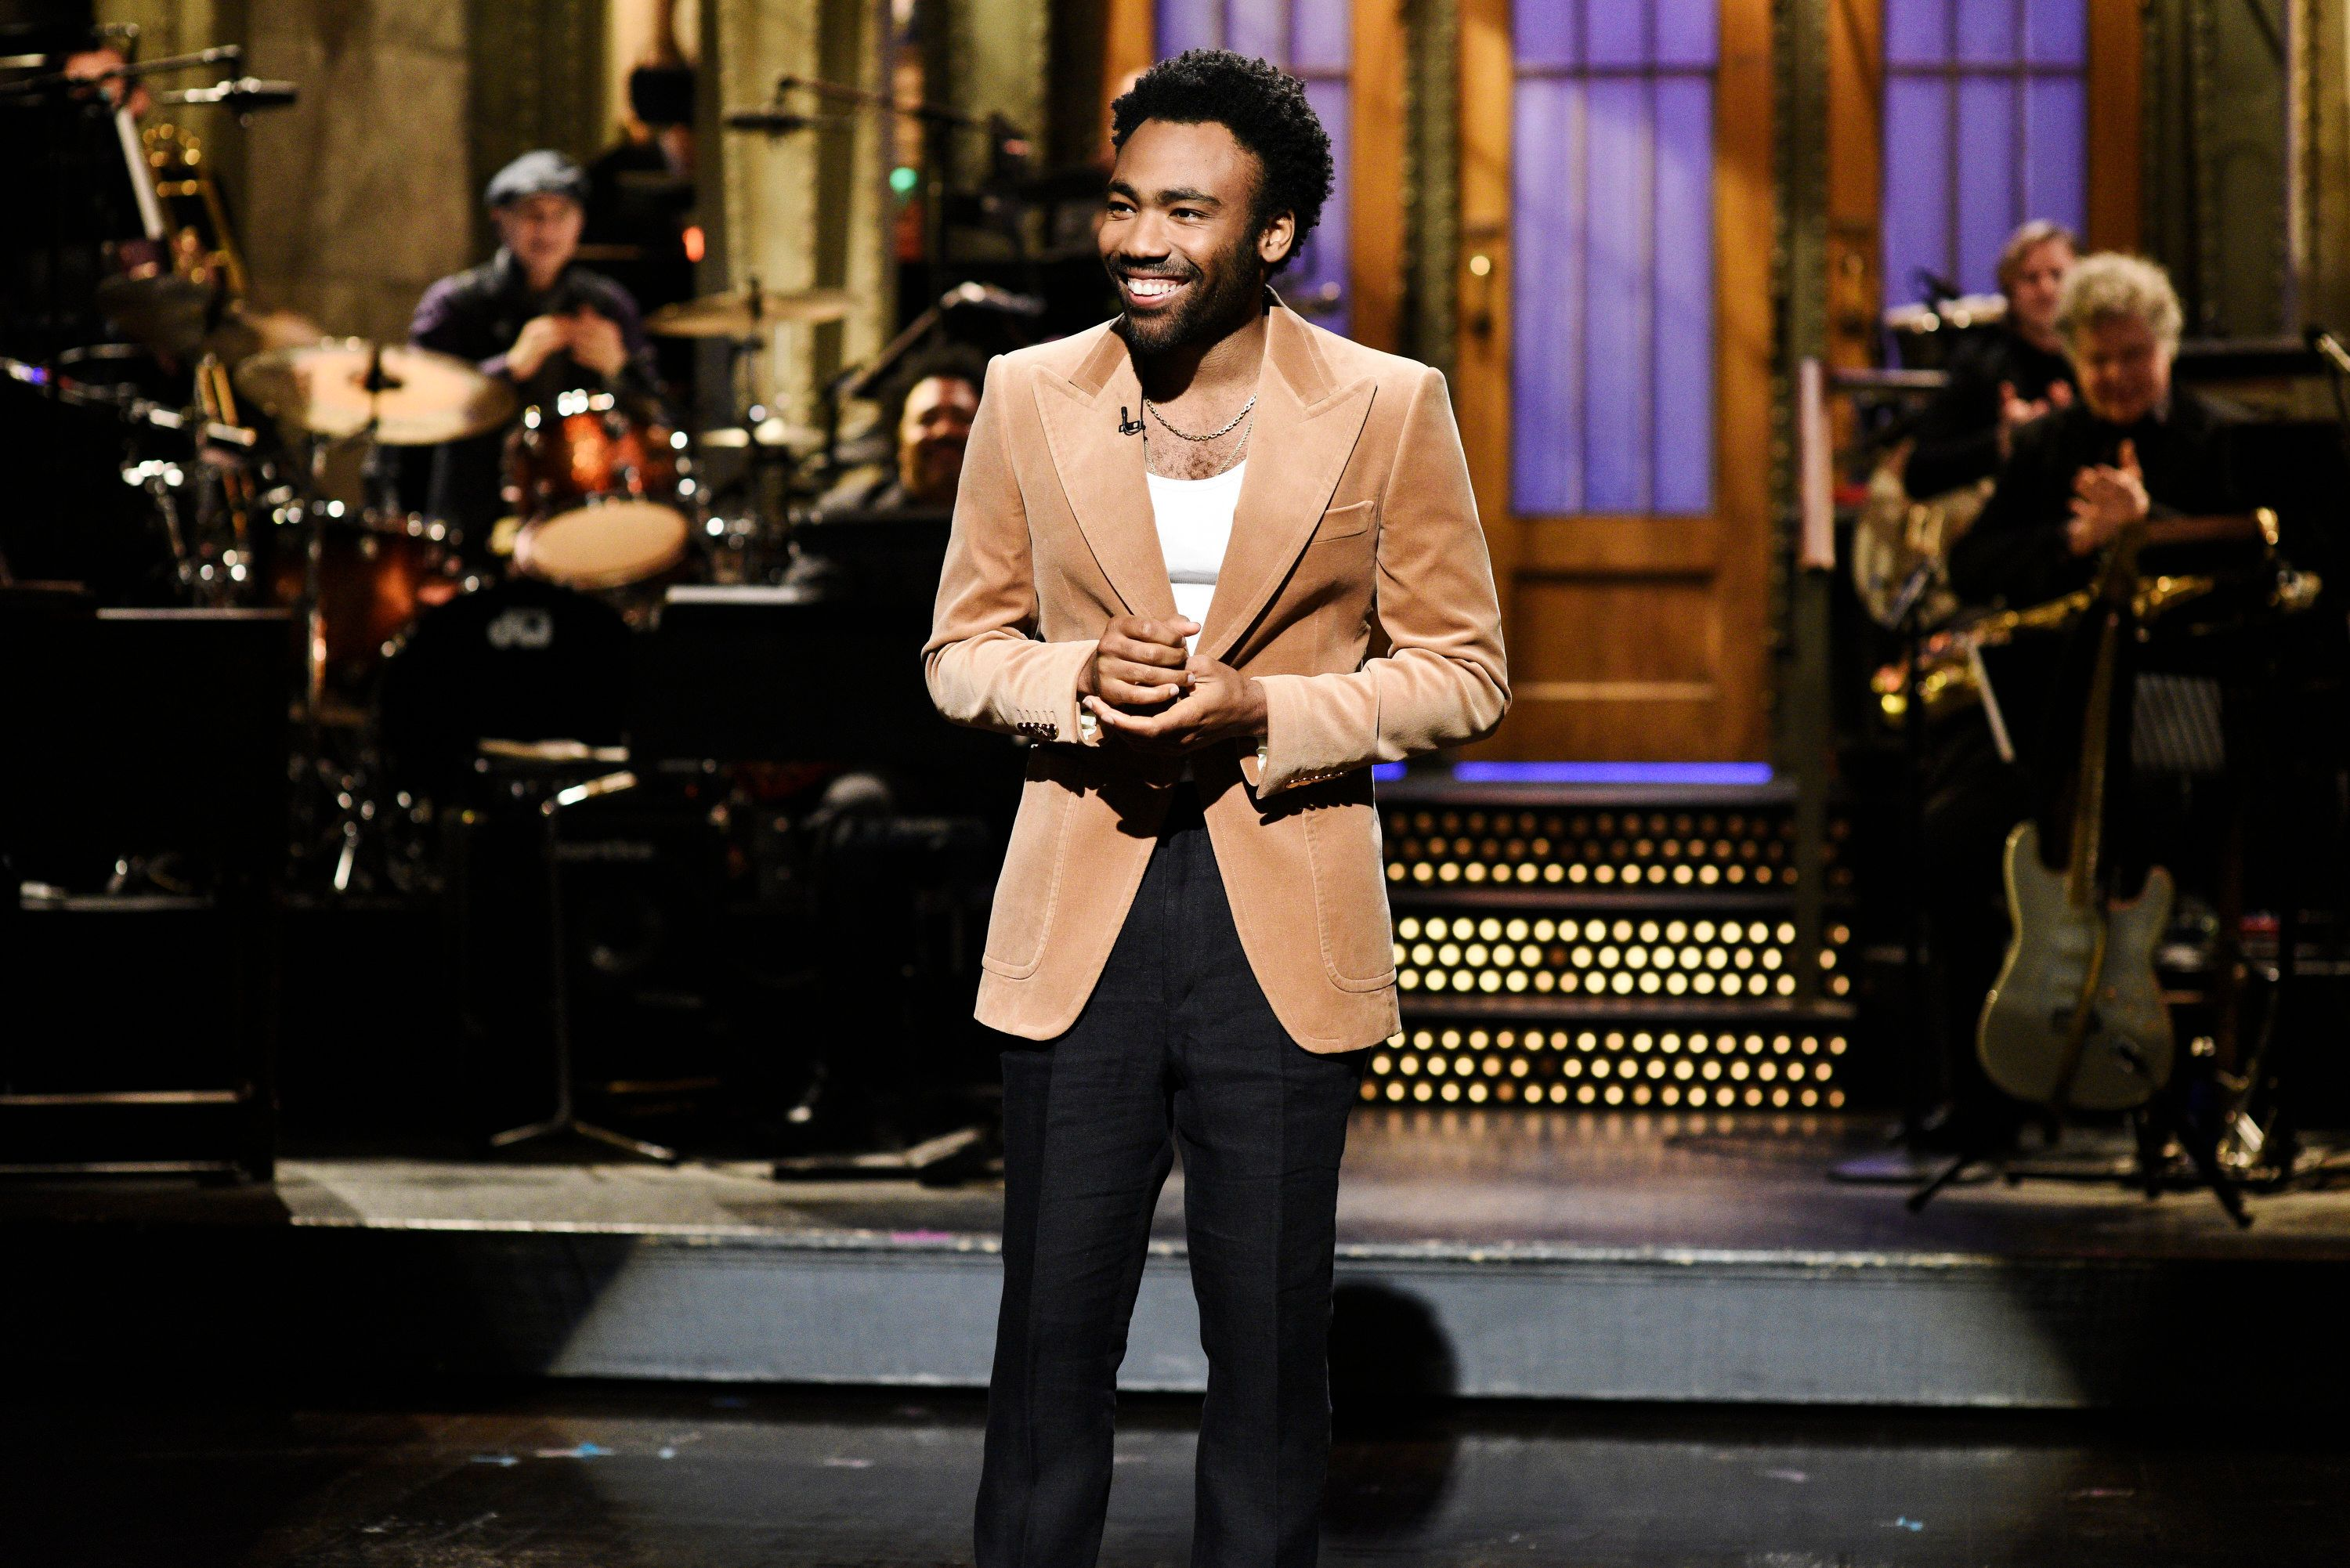 SATURDAY NIGHT LIVE -- 'Donald Glover' Episode 1744 -- Pictured: Host Donald Glover during the opening monologue in Studio 8H on Saturday, May 5, 2018 -- (Photo by: Will Heath/NBC/NBCU Photo Bank via Getty Images)